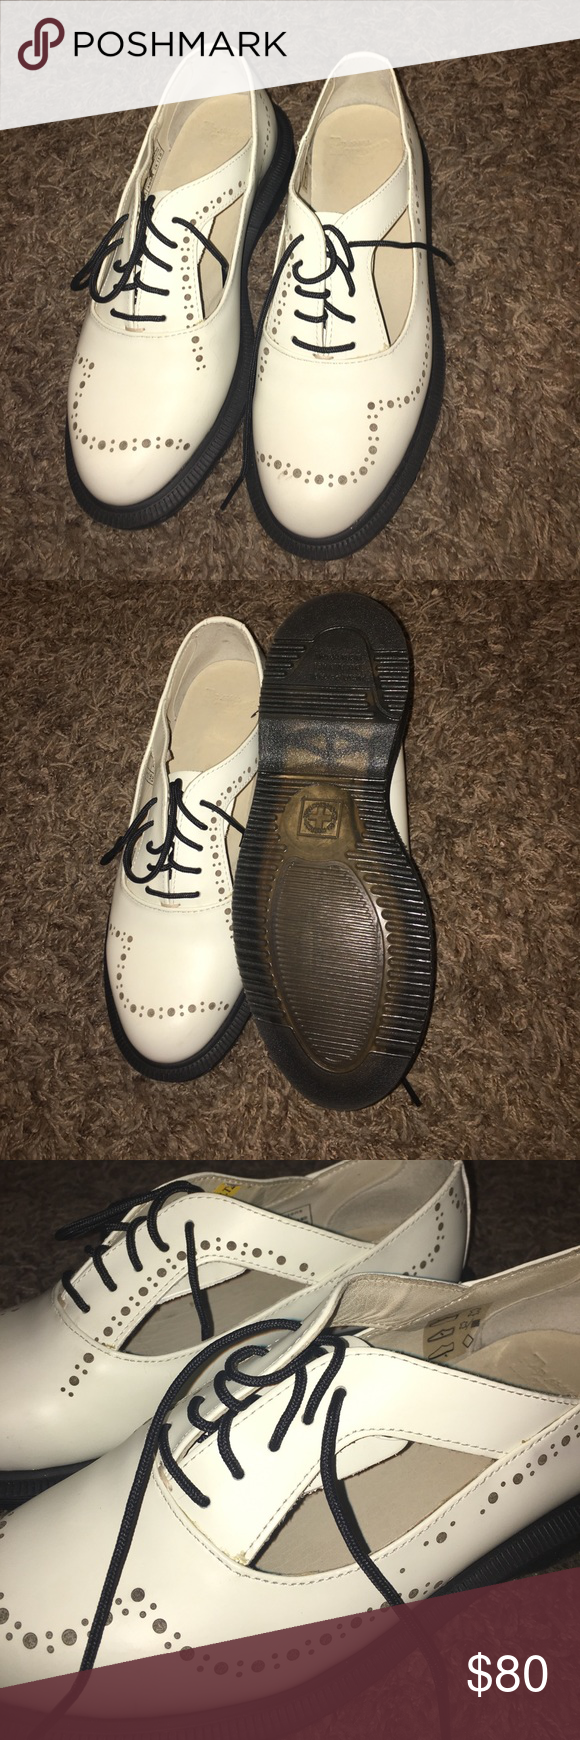 Dr martens Ruby oxfords off white uk3 us5.5 Dr martens Ruby oxfords off white uk3 us5.5 Dr. Martens Shoes Flats & Loafers